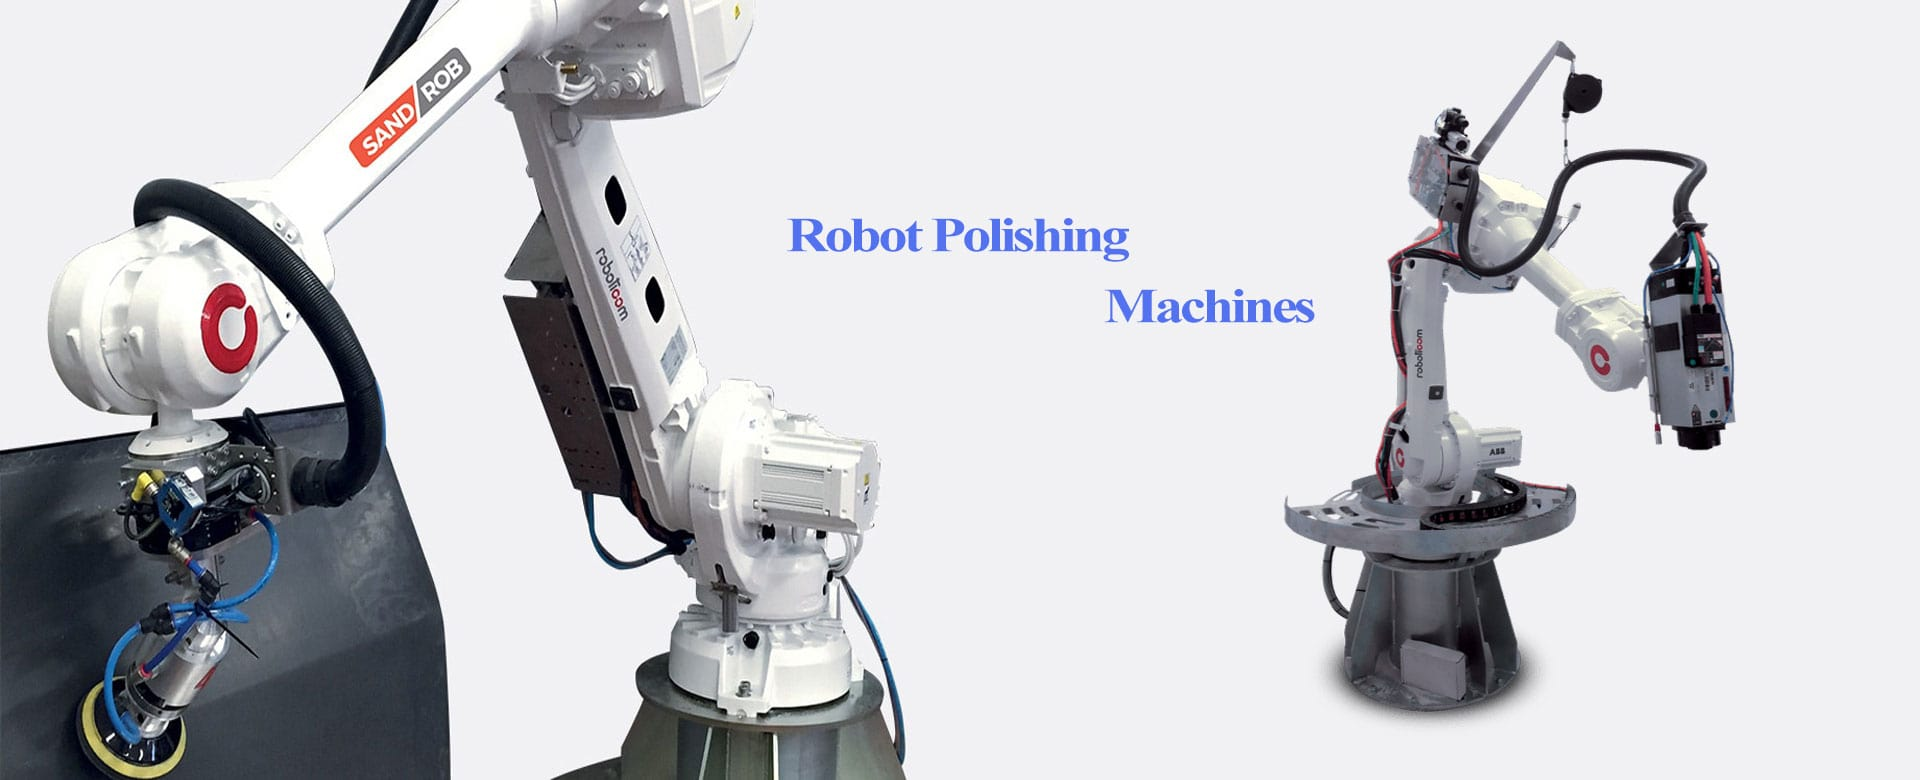 Robot Polishing